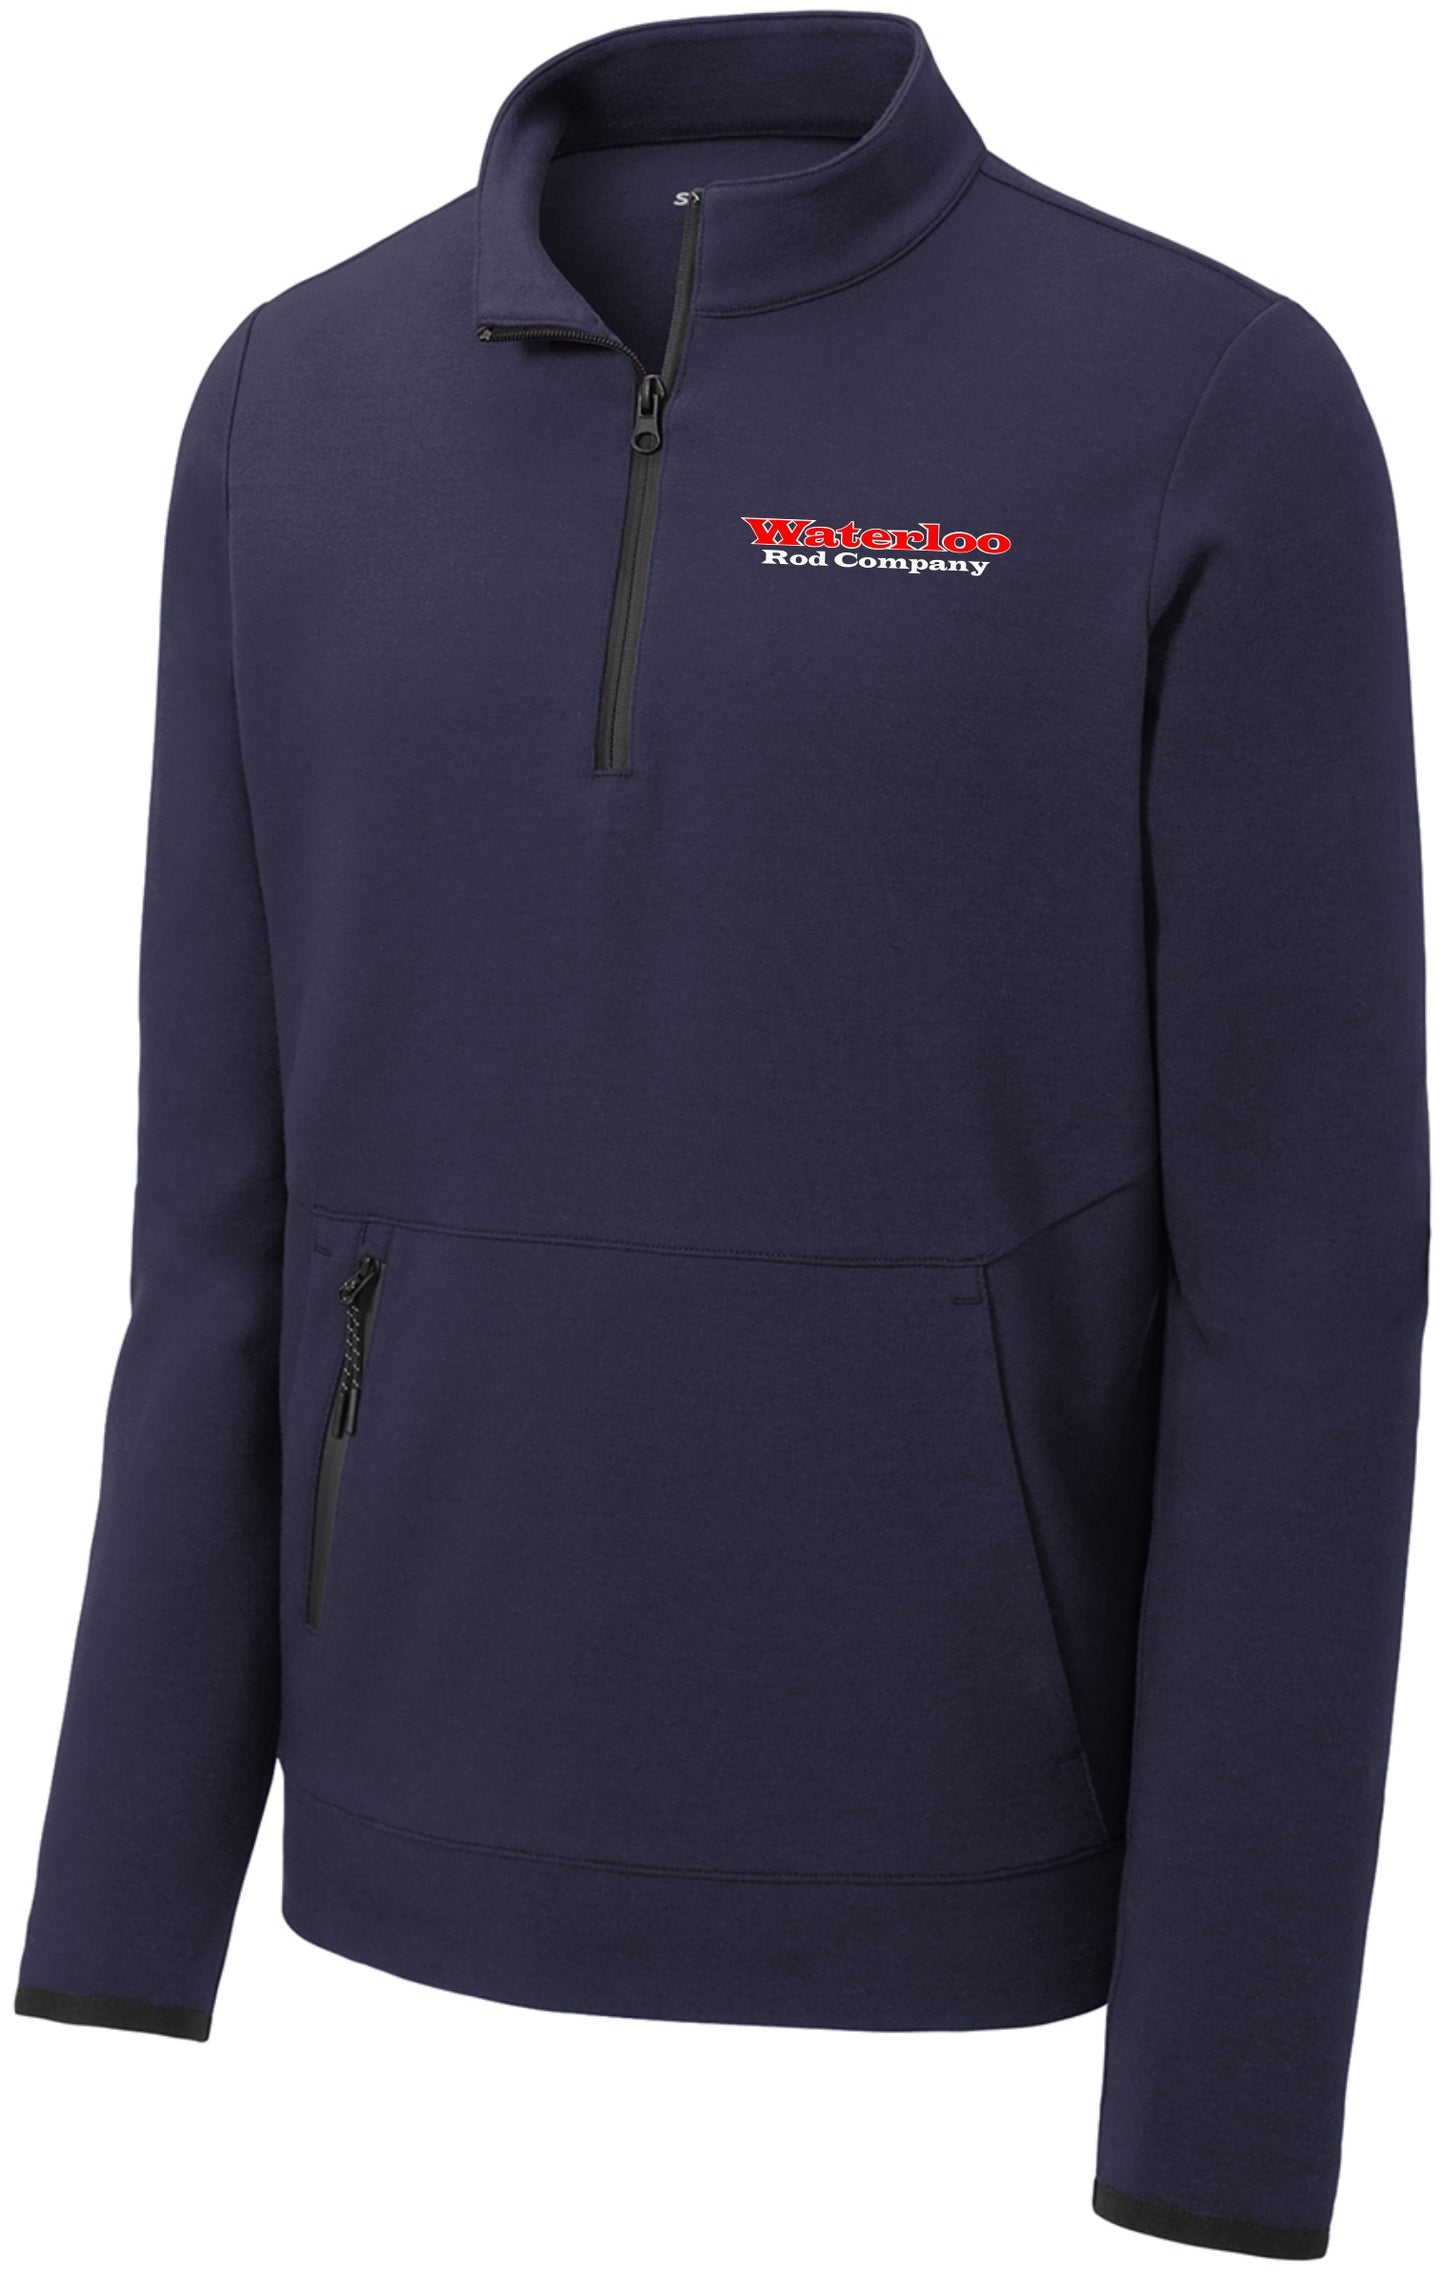 Waterloo Pullover Half-Zip Jacket- Navy